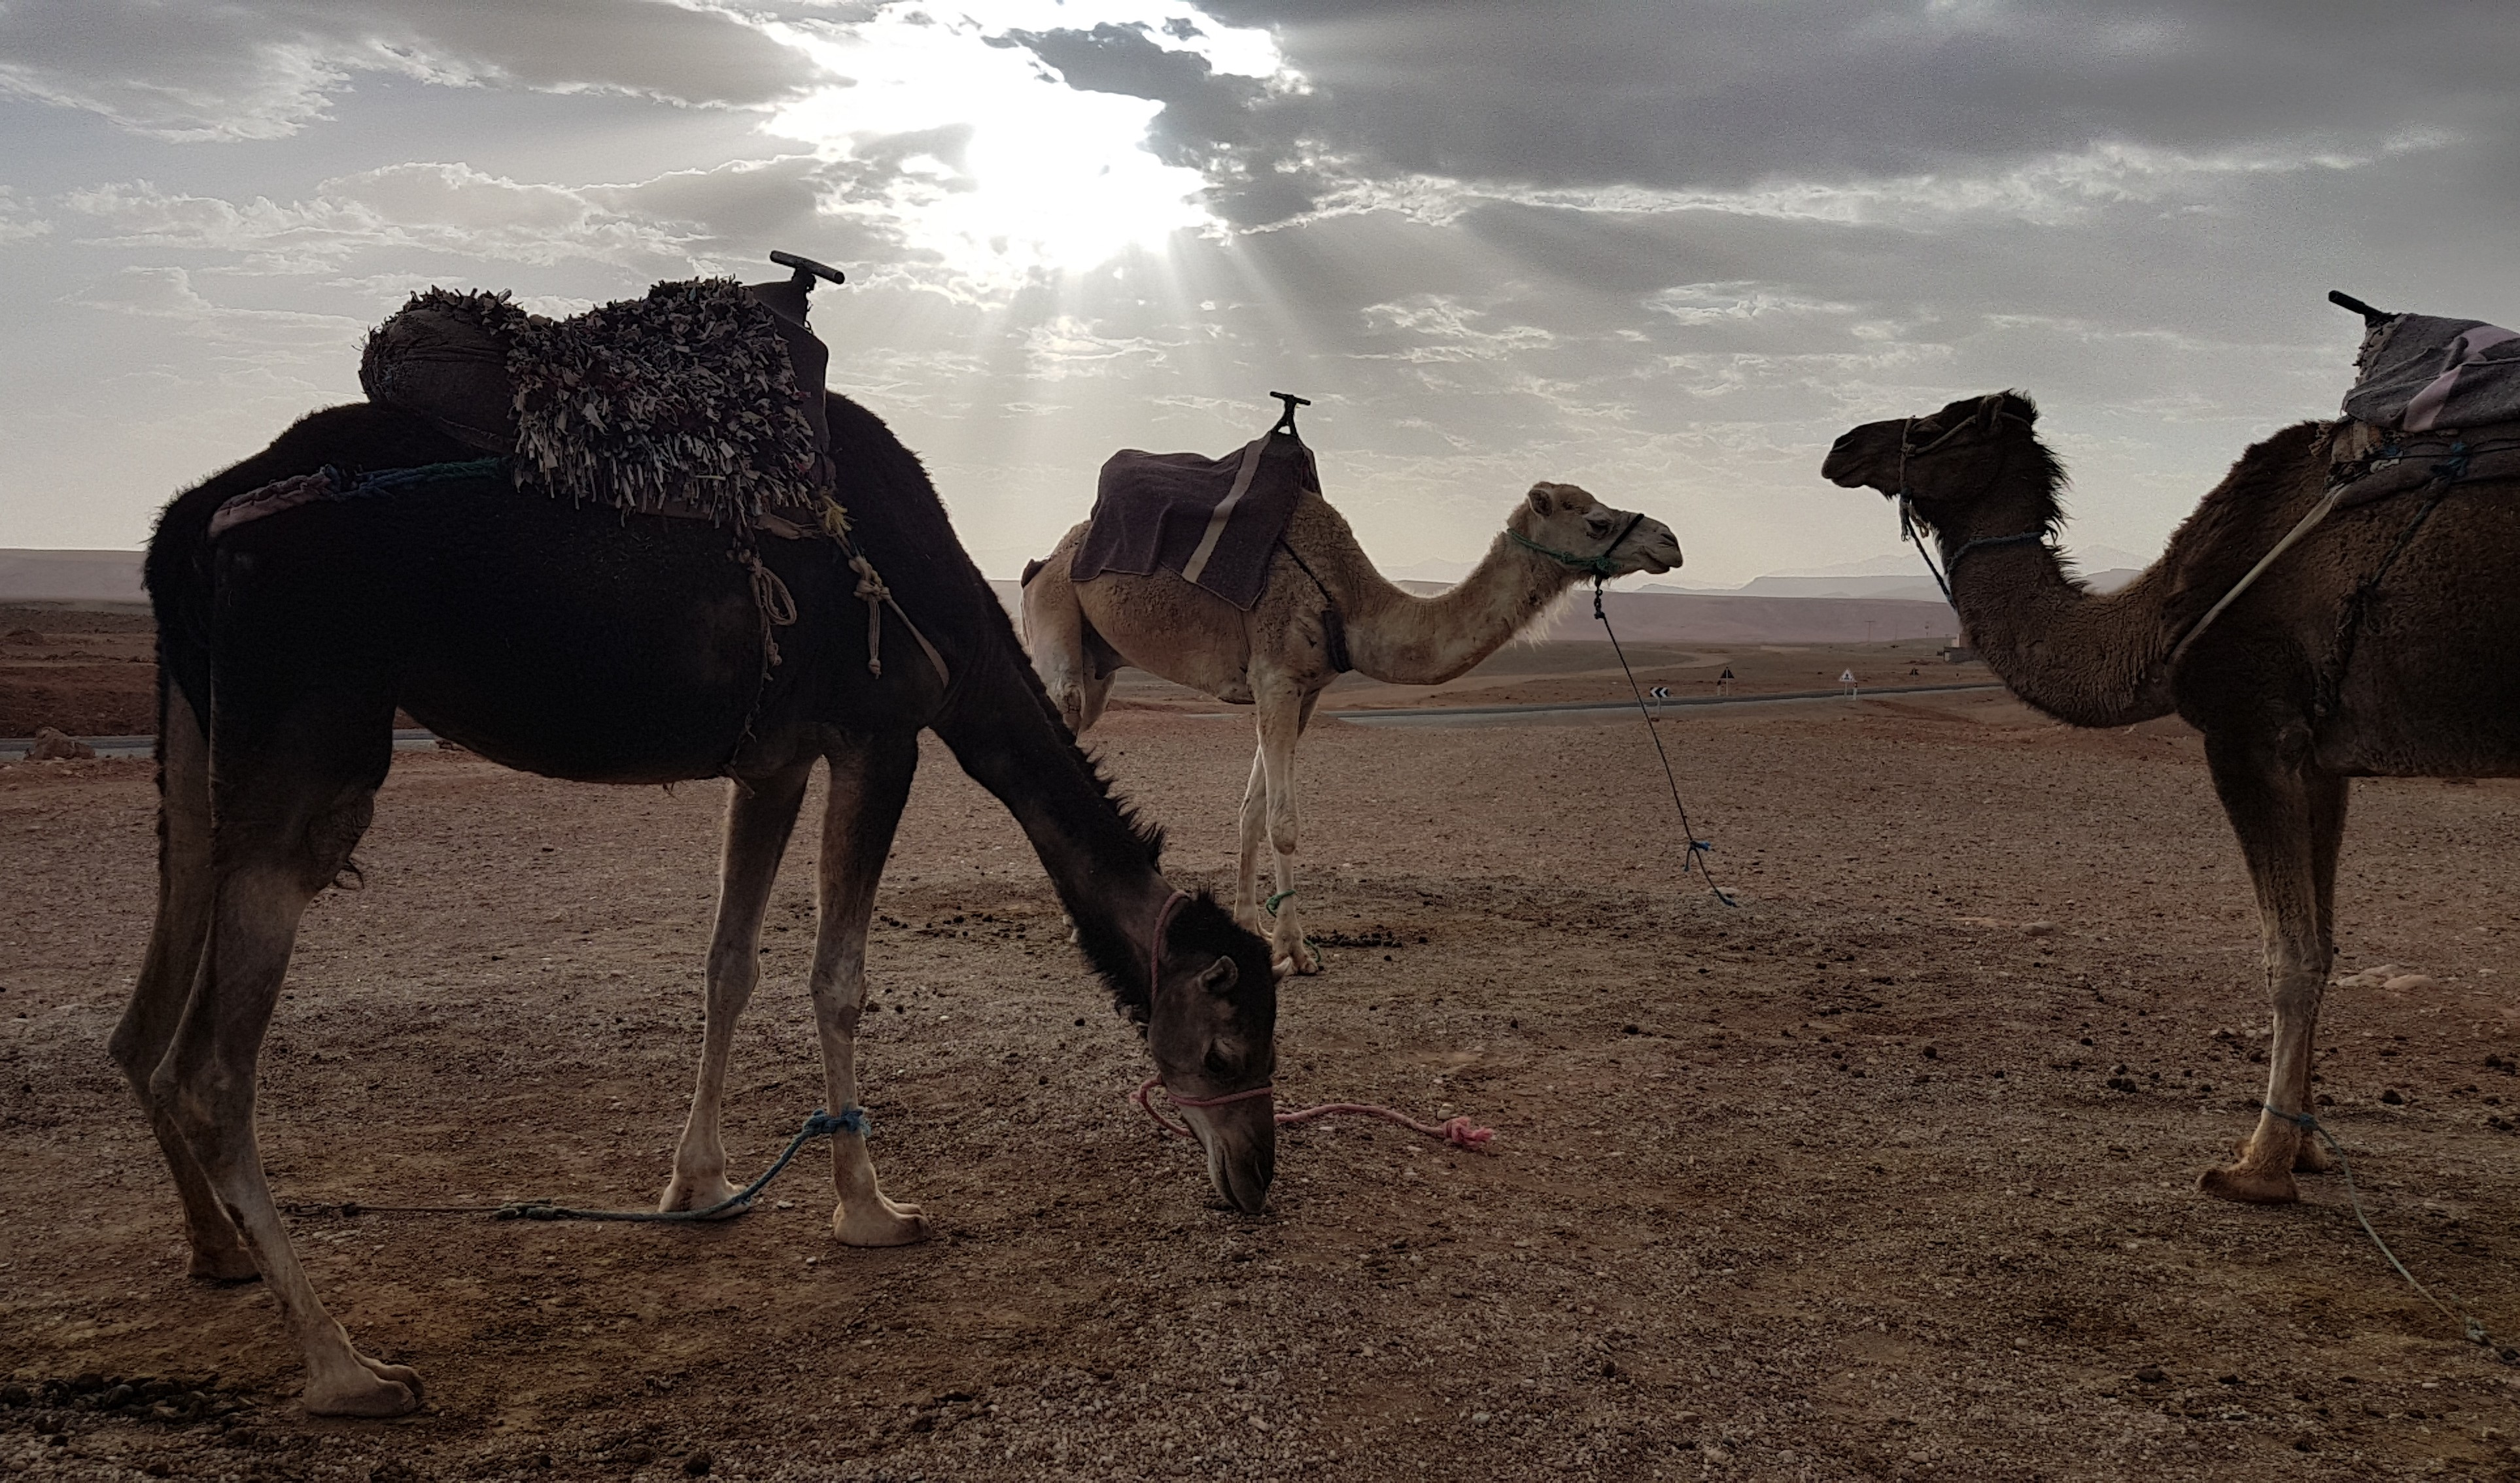 The camels waiting for us